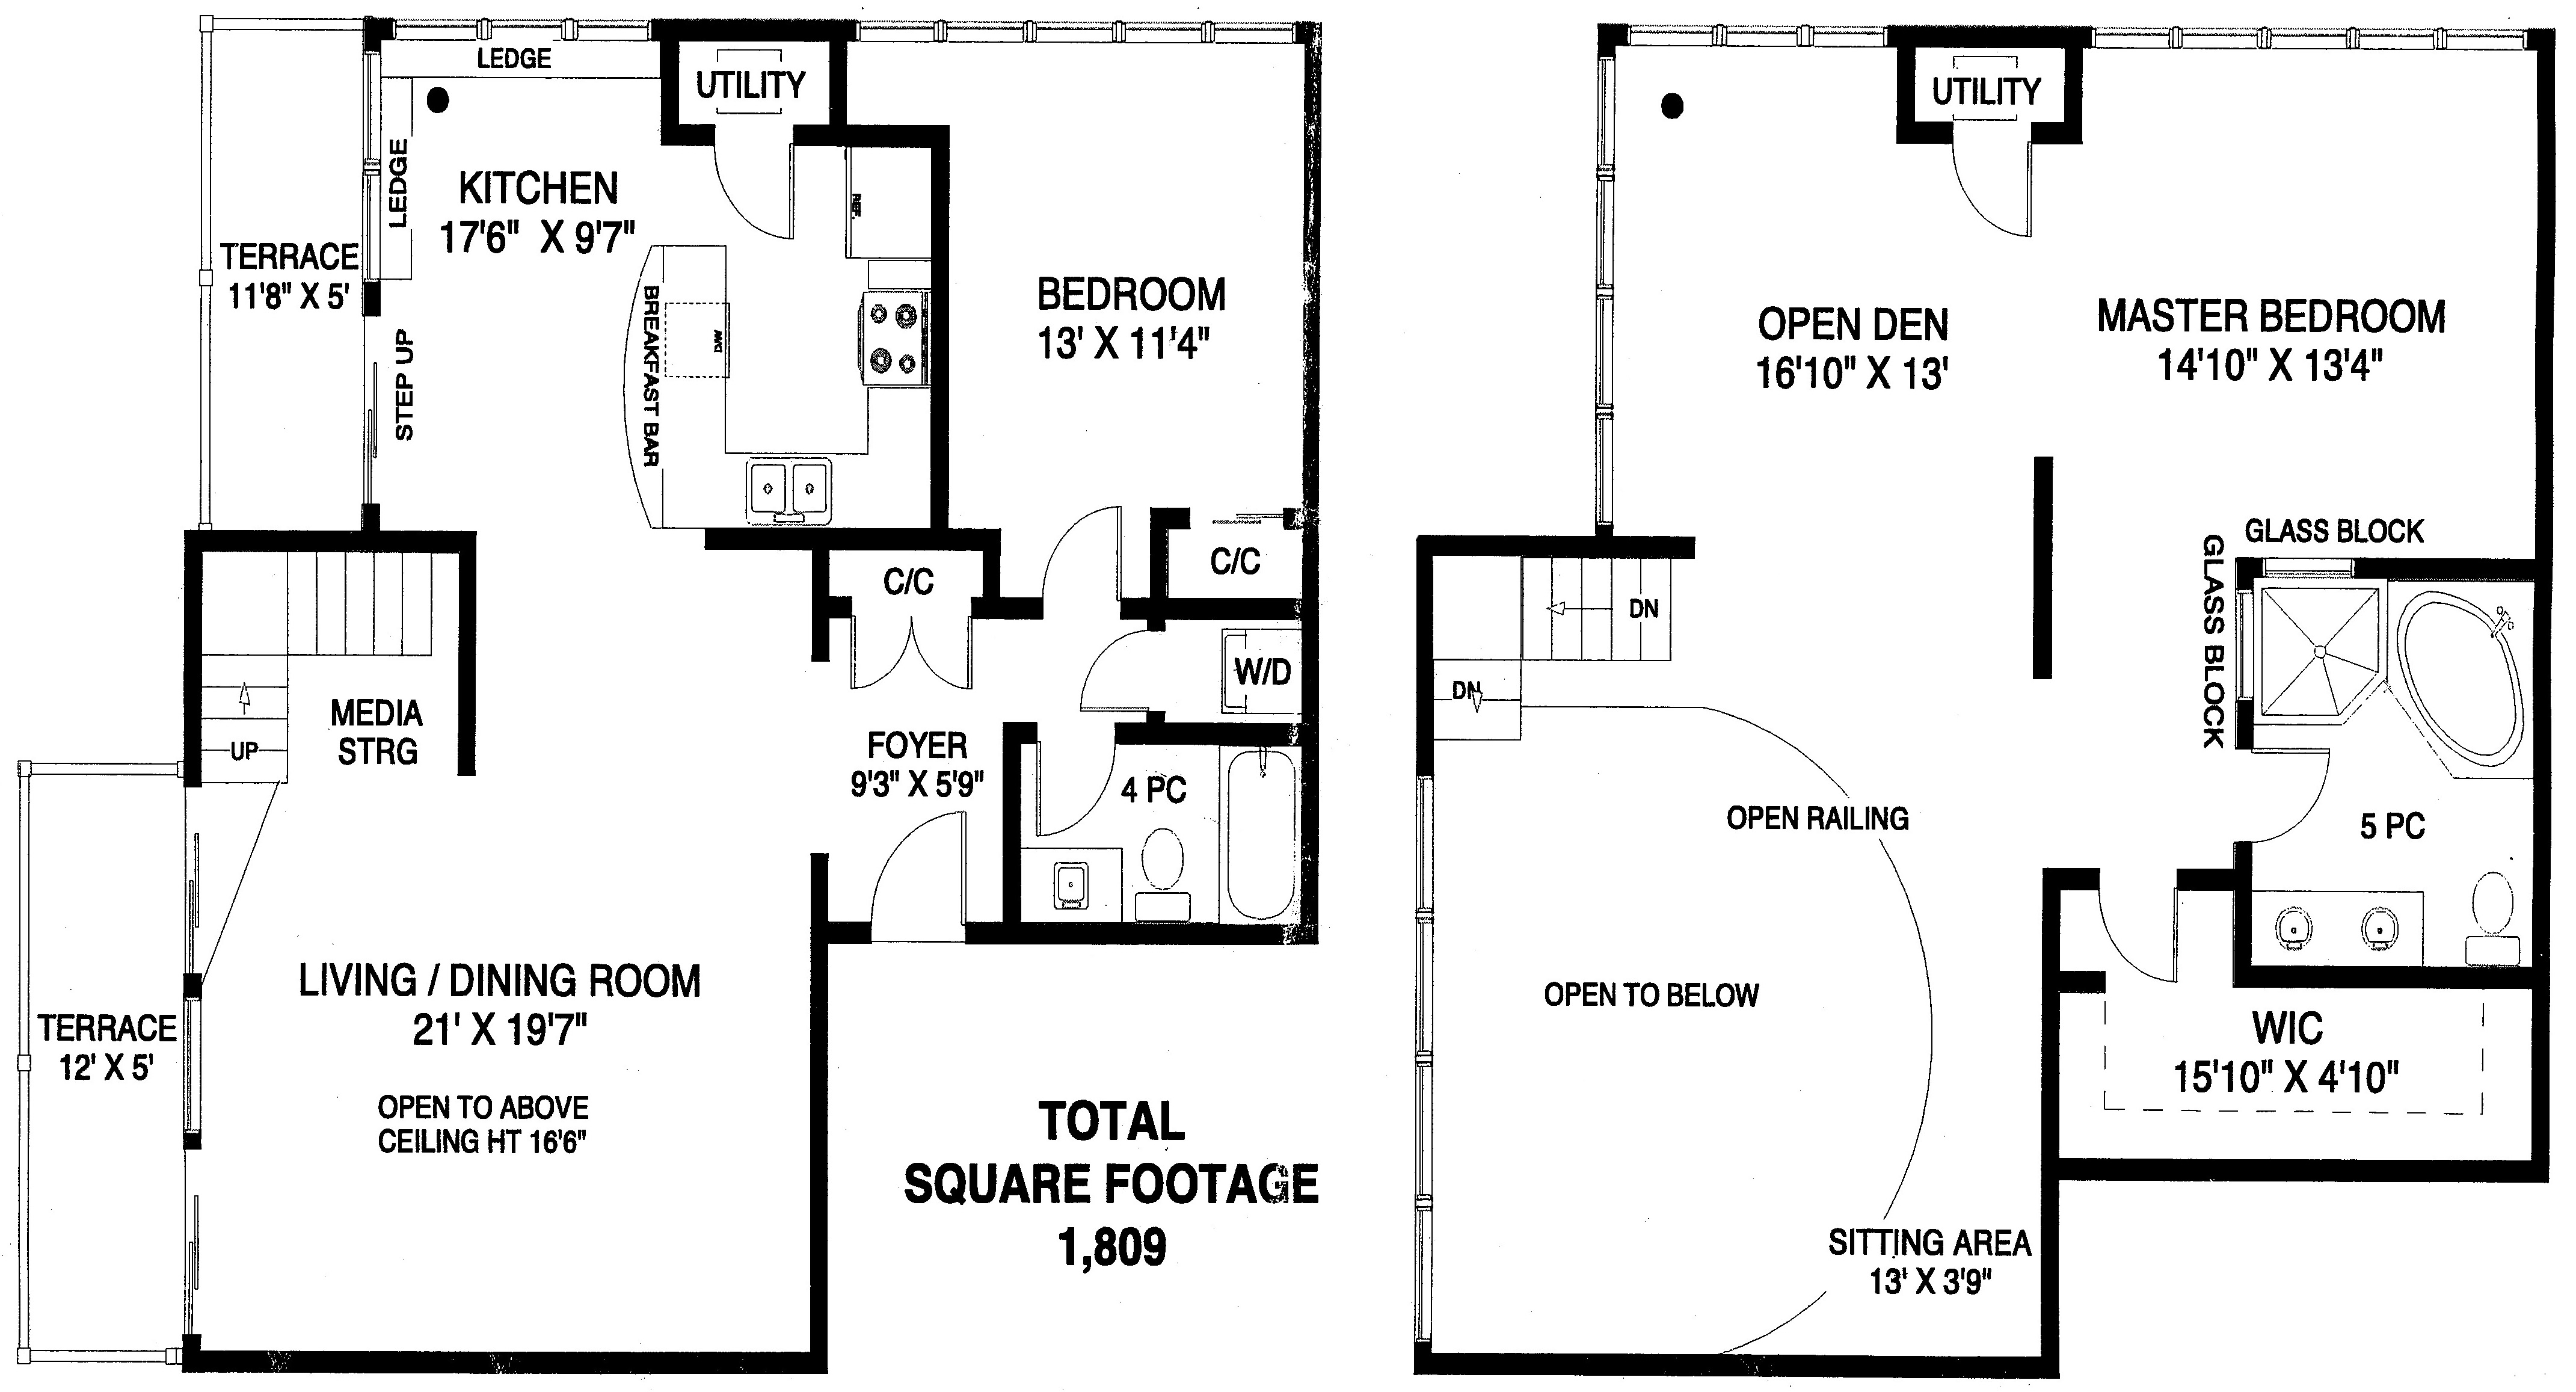 House Floor Plans With Garage From Gate